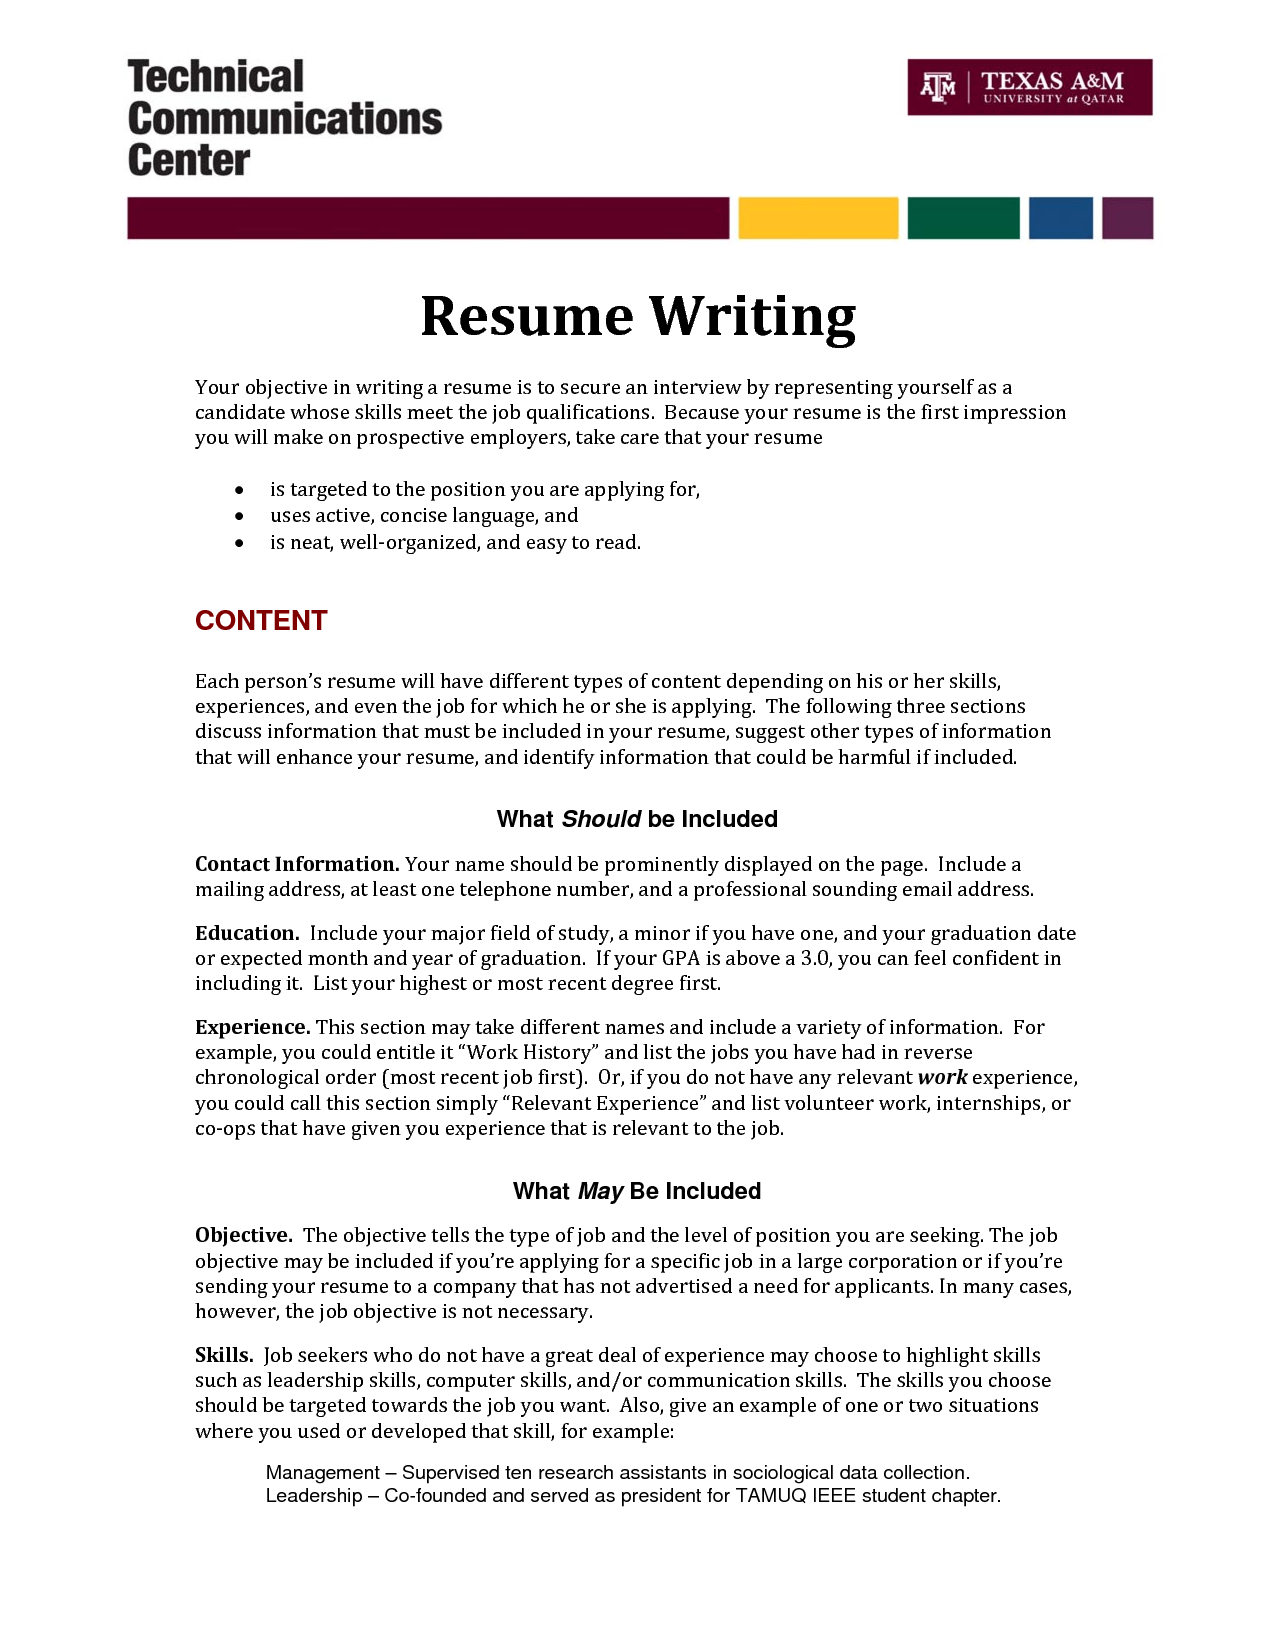 how to write objective for resume